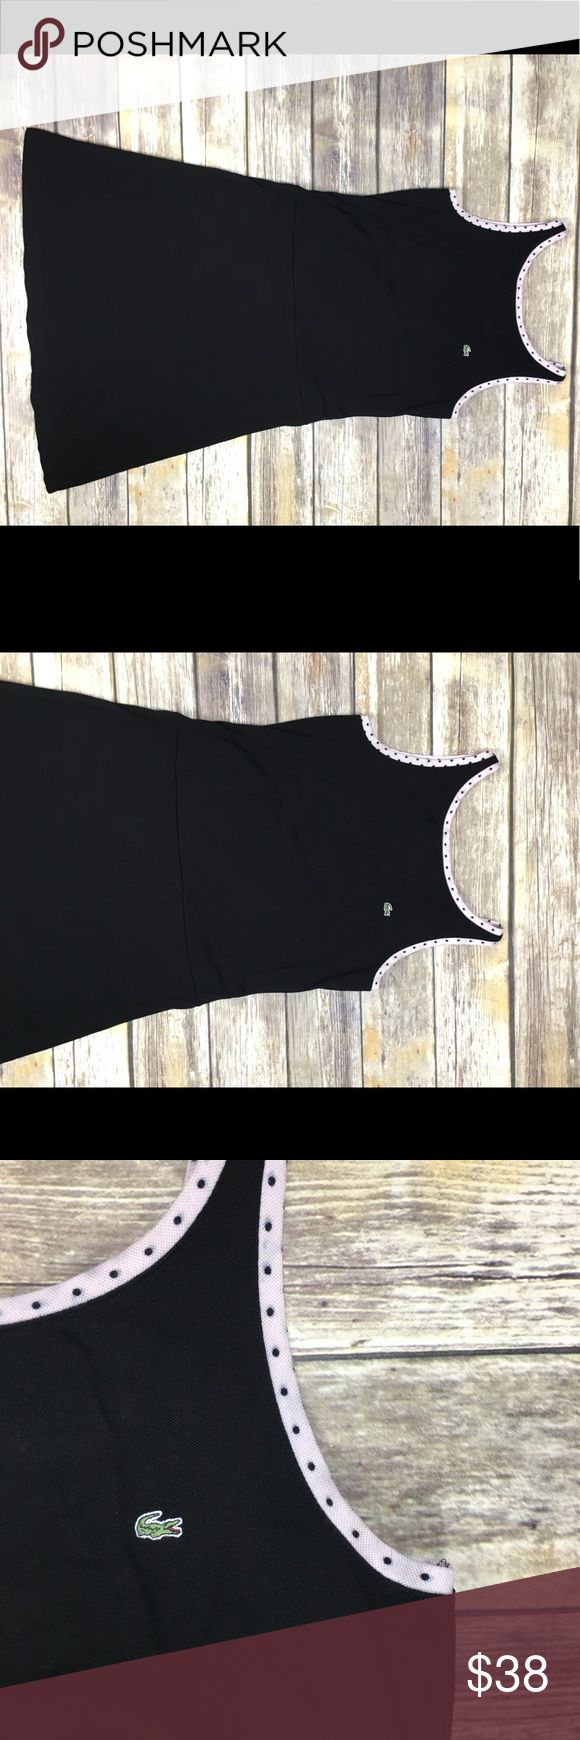 Lacoste Deep V Wrap Back A Line Dress This wrap back a line dress is black with polka dot trim. A perfect weekend dress, simple but with some interest and way comfortable. Lacoste Dresses